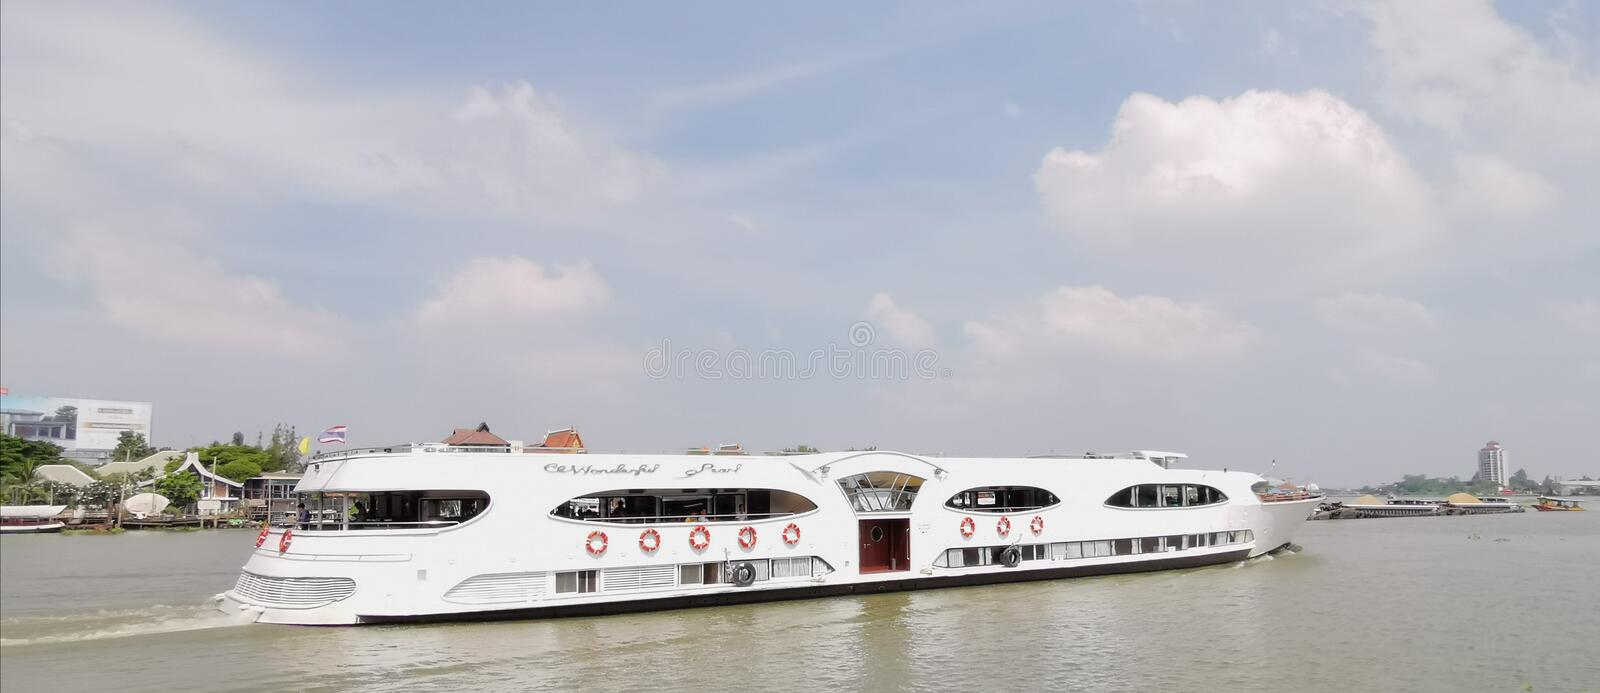 Large river cruise boat, Thailand. Goes up the Chao Phraya River on October 29, 2019 in Pakkret, Nonthaburi, Thailand royalty free stock photography